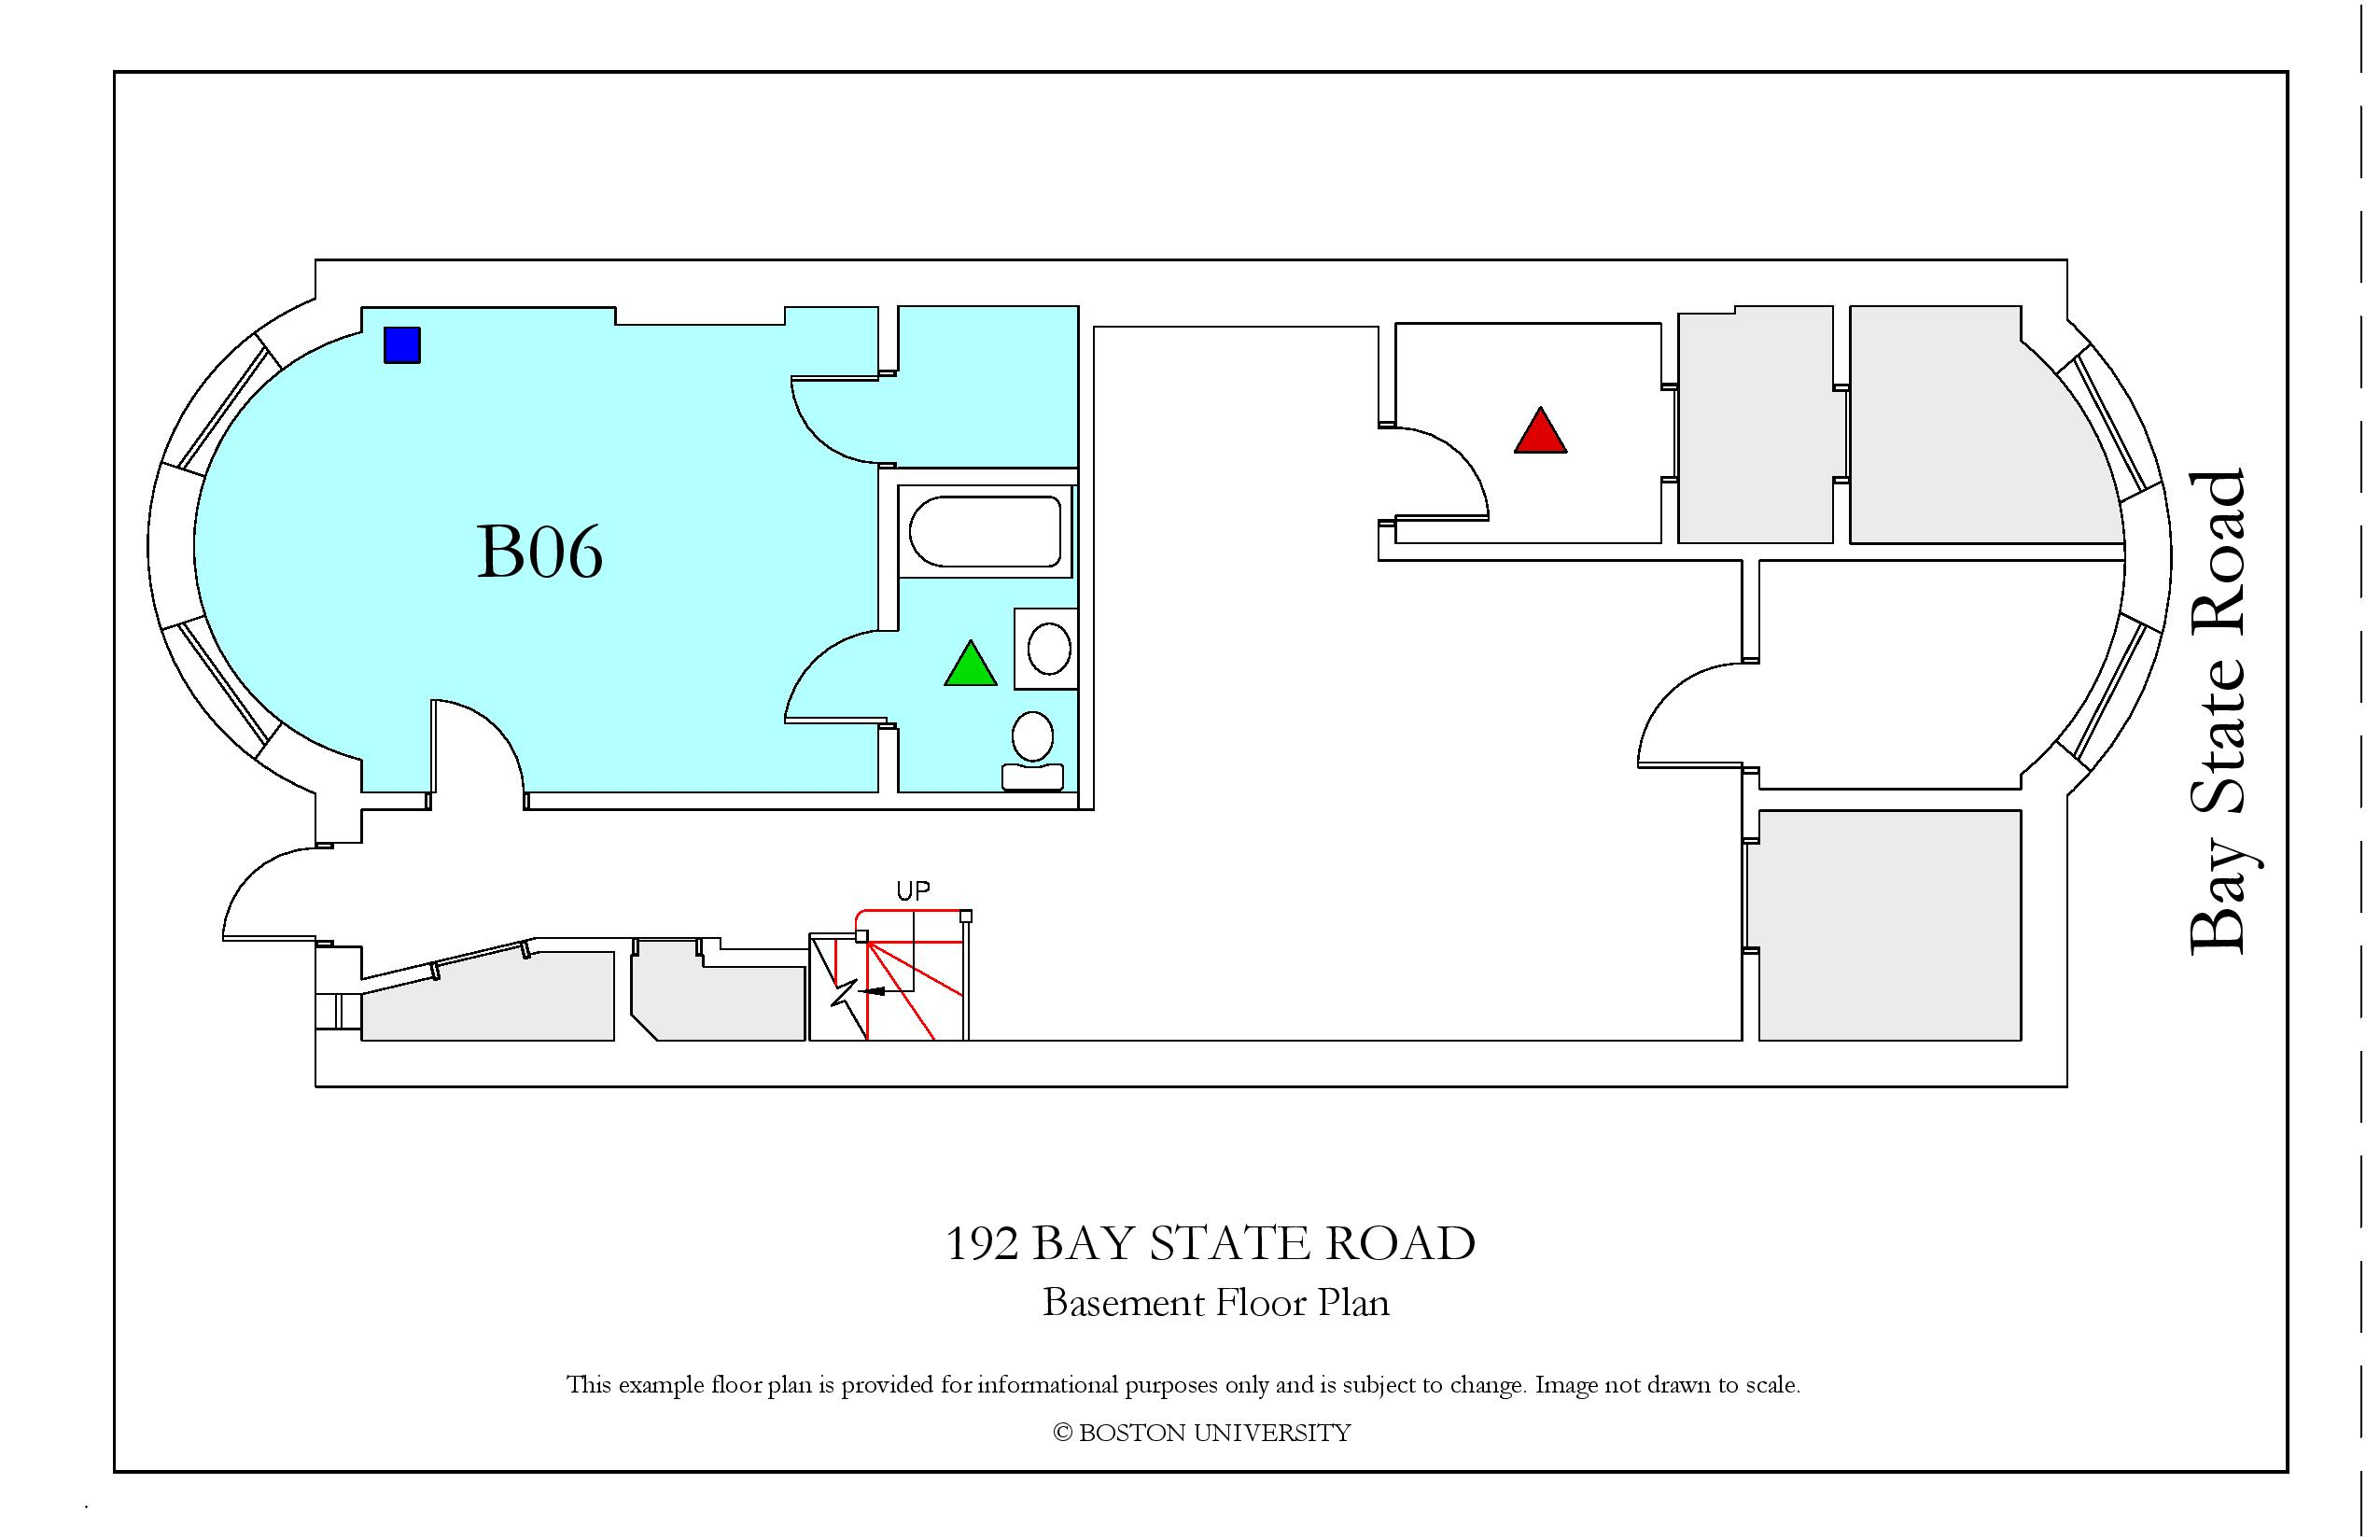 192 Bay State Road Housing Boston University Example Diagram Basementfloor Page 001